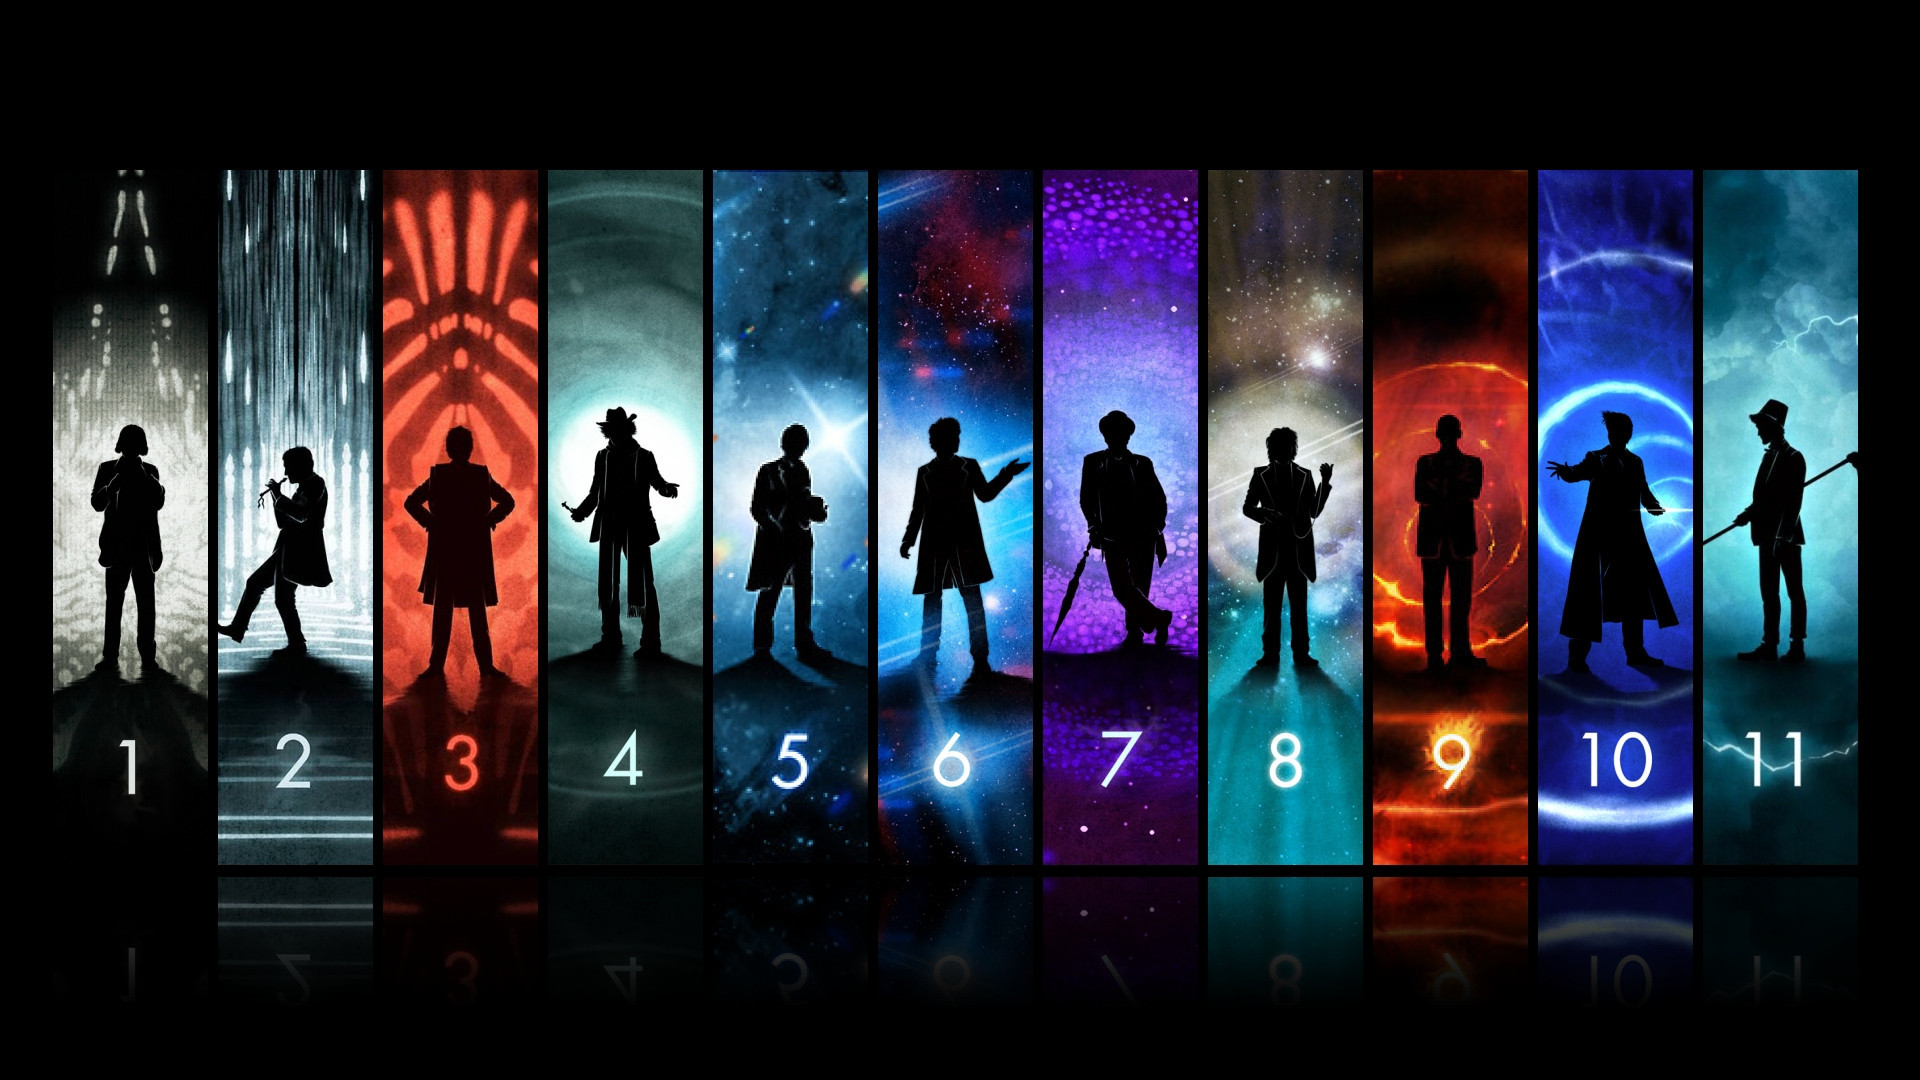 108 Doctor Who Hd Wallpaper 1920 1080